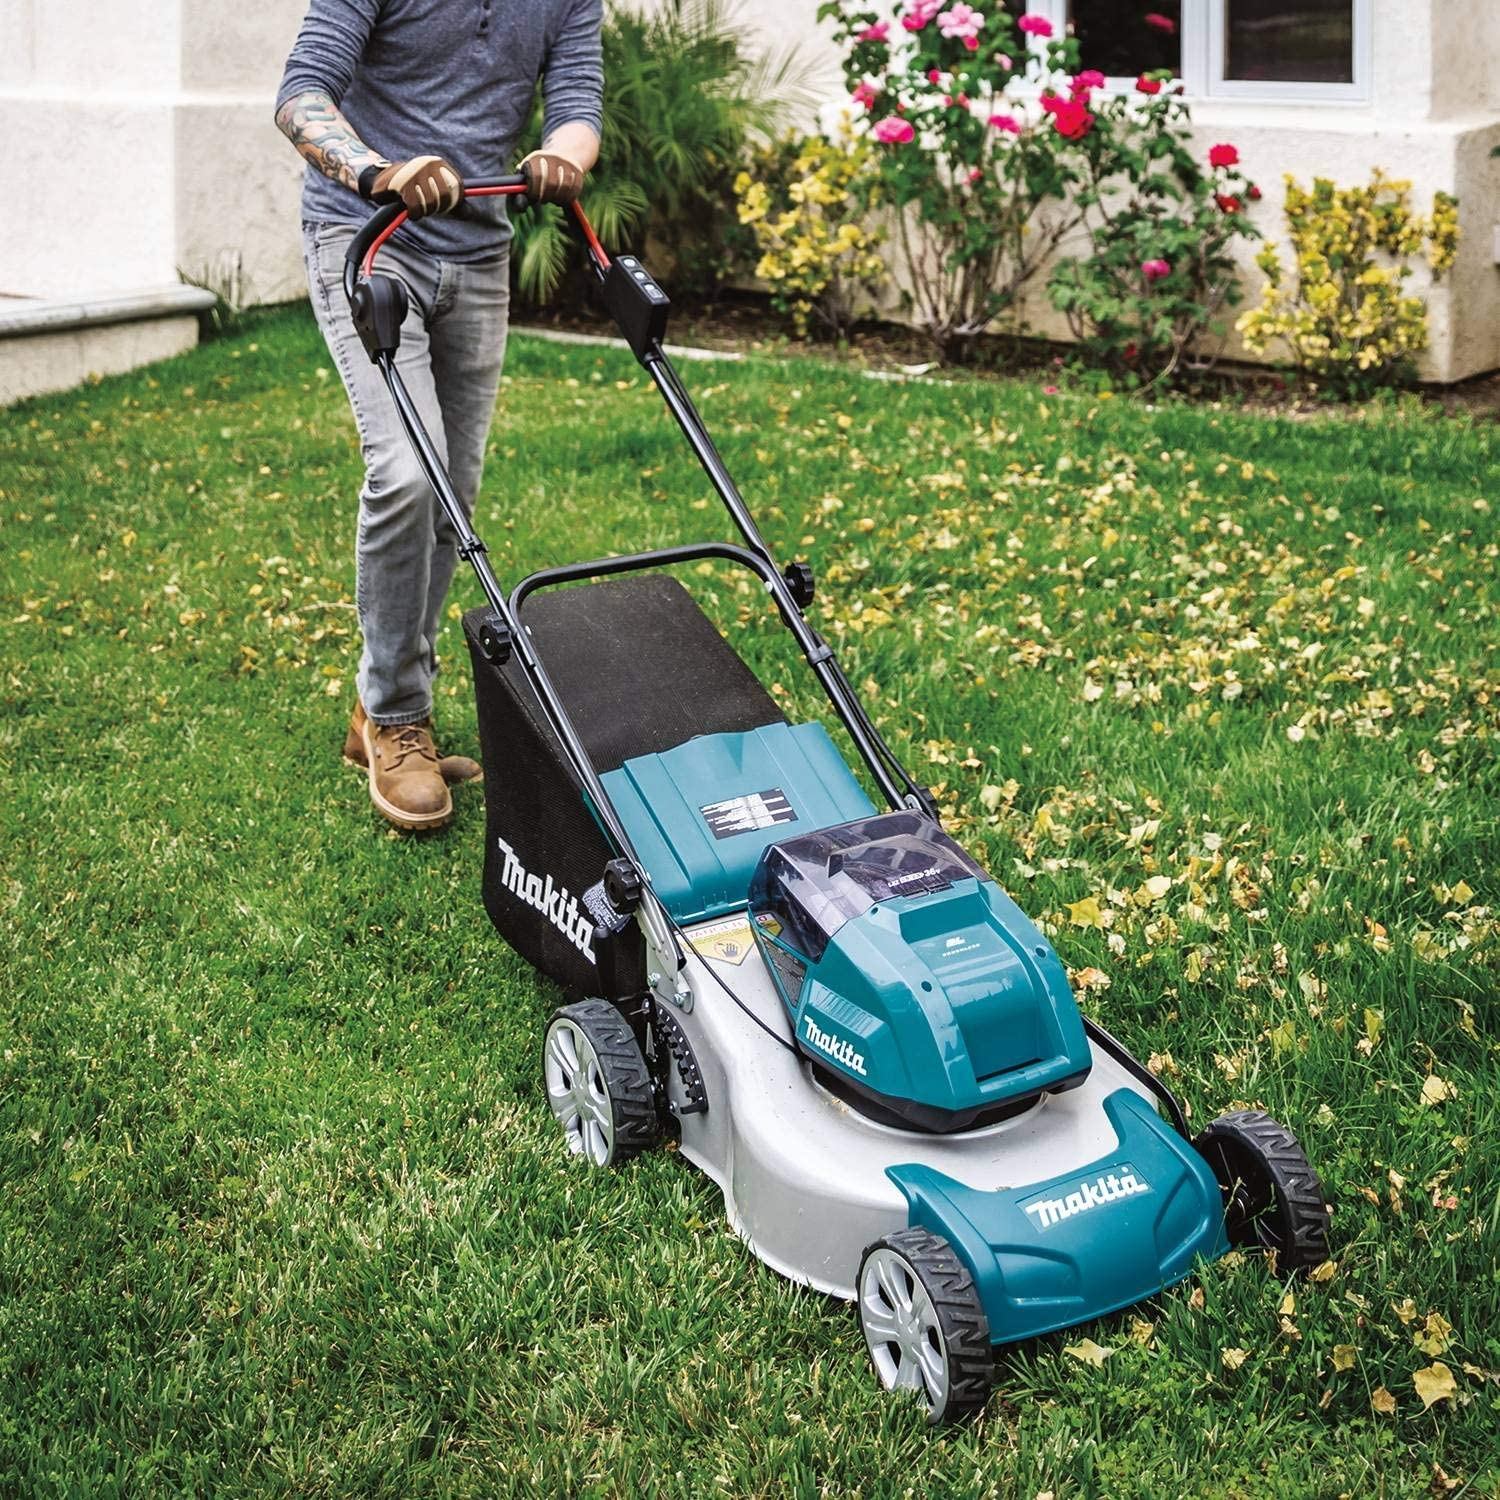 Makita XML03PT1 Lawn Mower